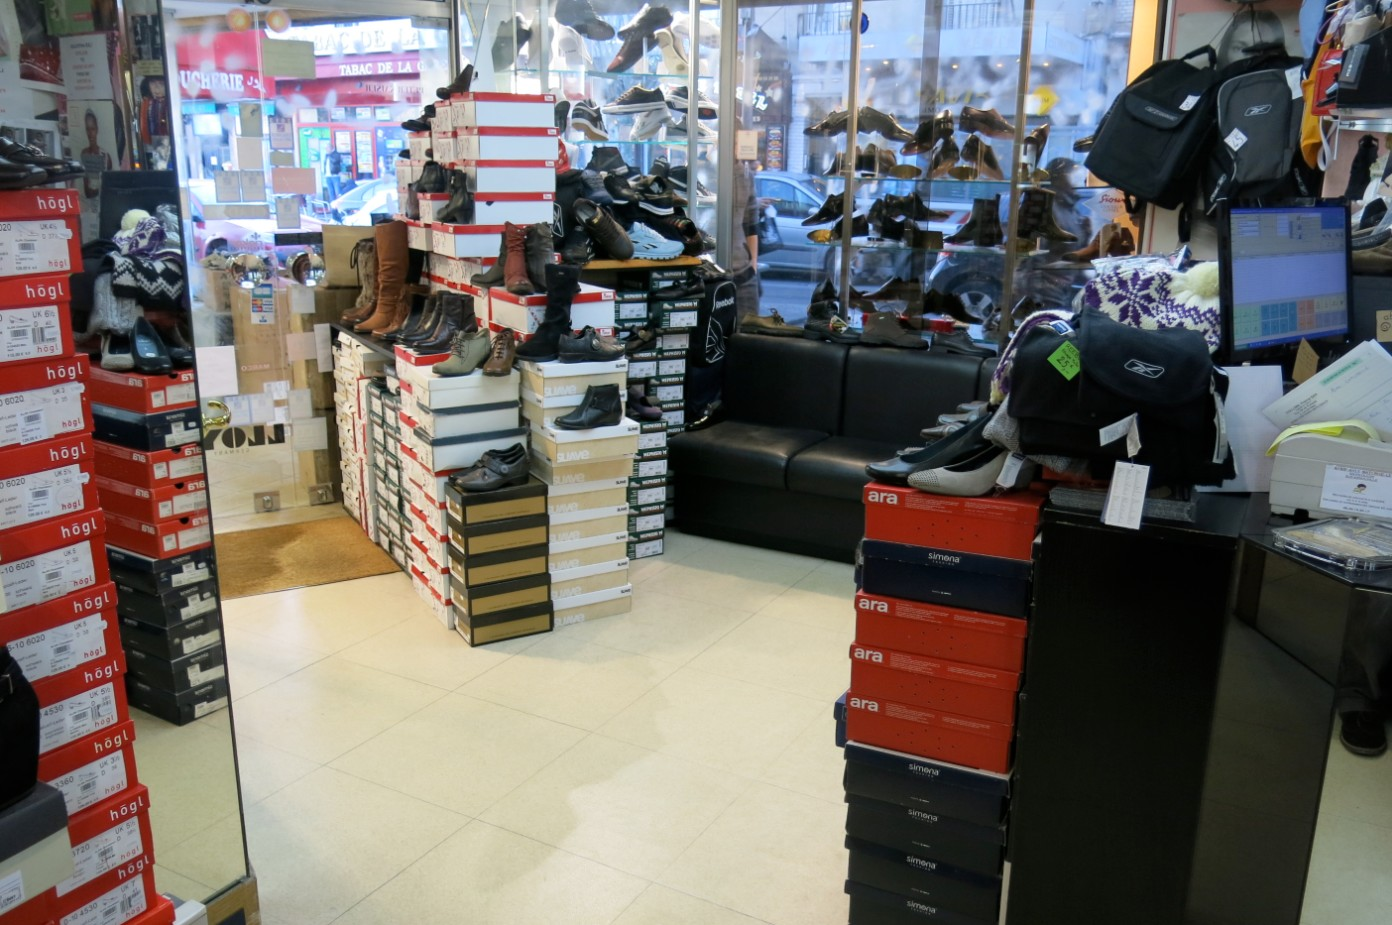 magasin chaussures alan chausseur